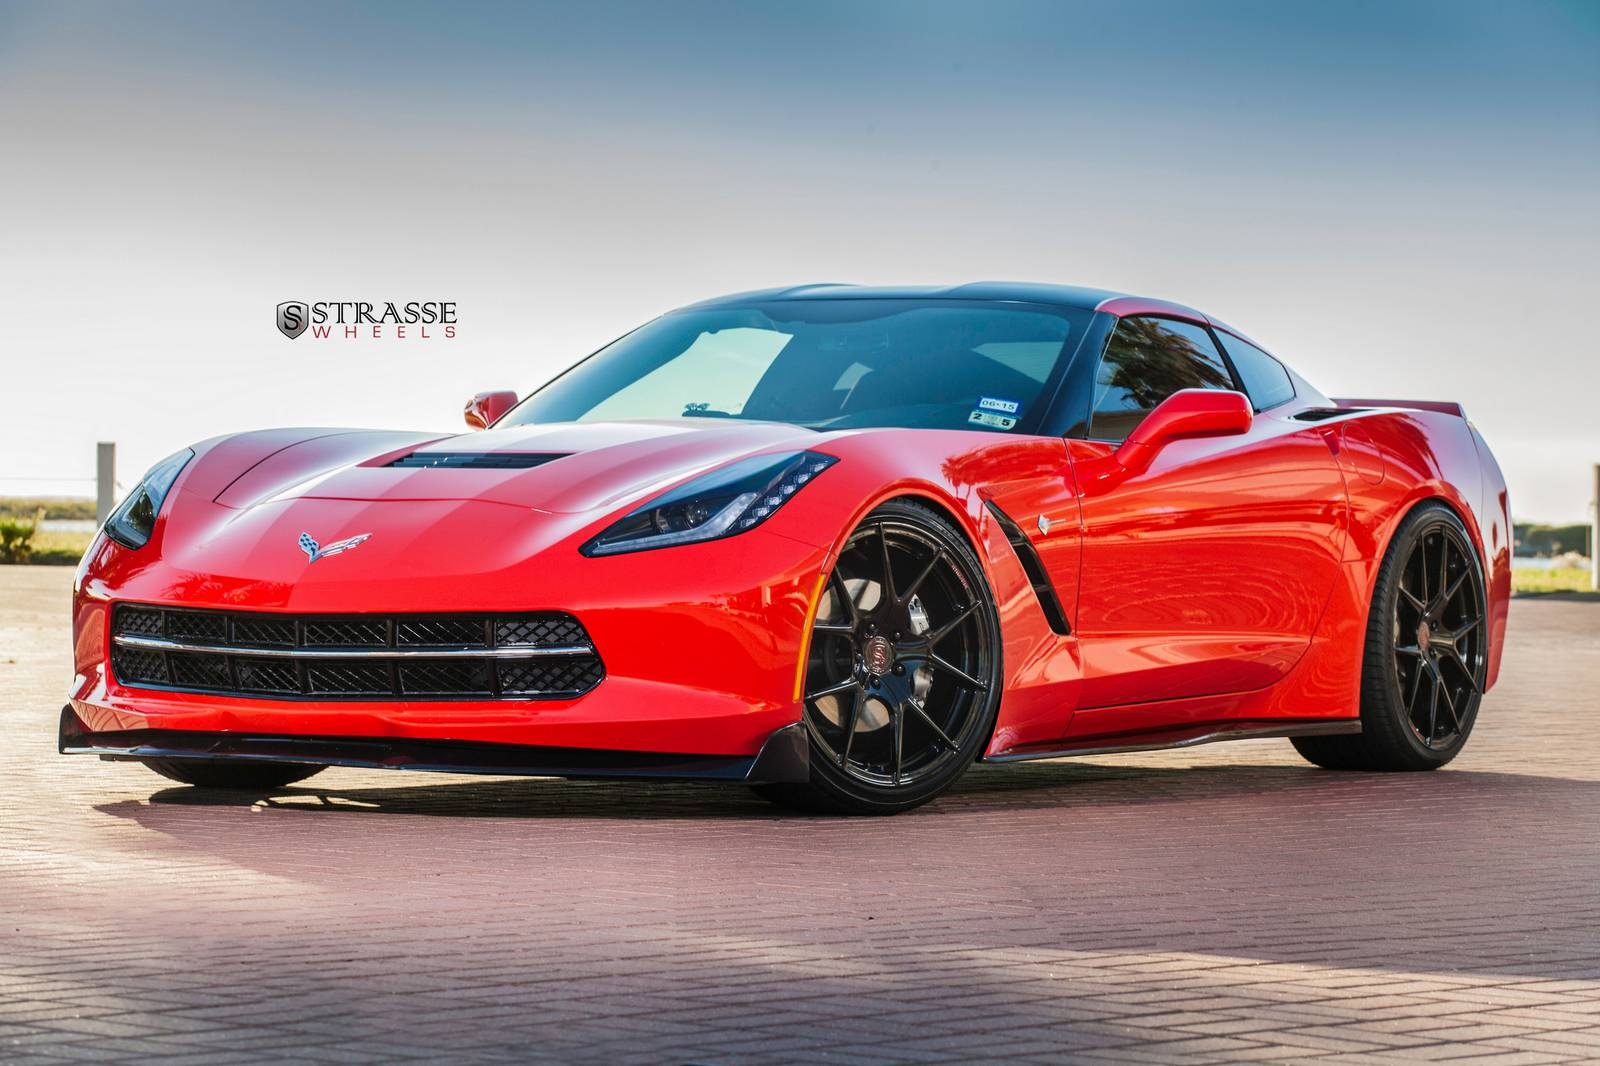 torch red corvette c7 stingray with sm5r strasse wheels gtspirit. Black Bedroom Furniture Sets. Home Design Ideas